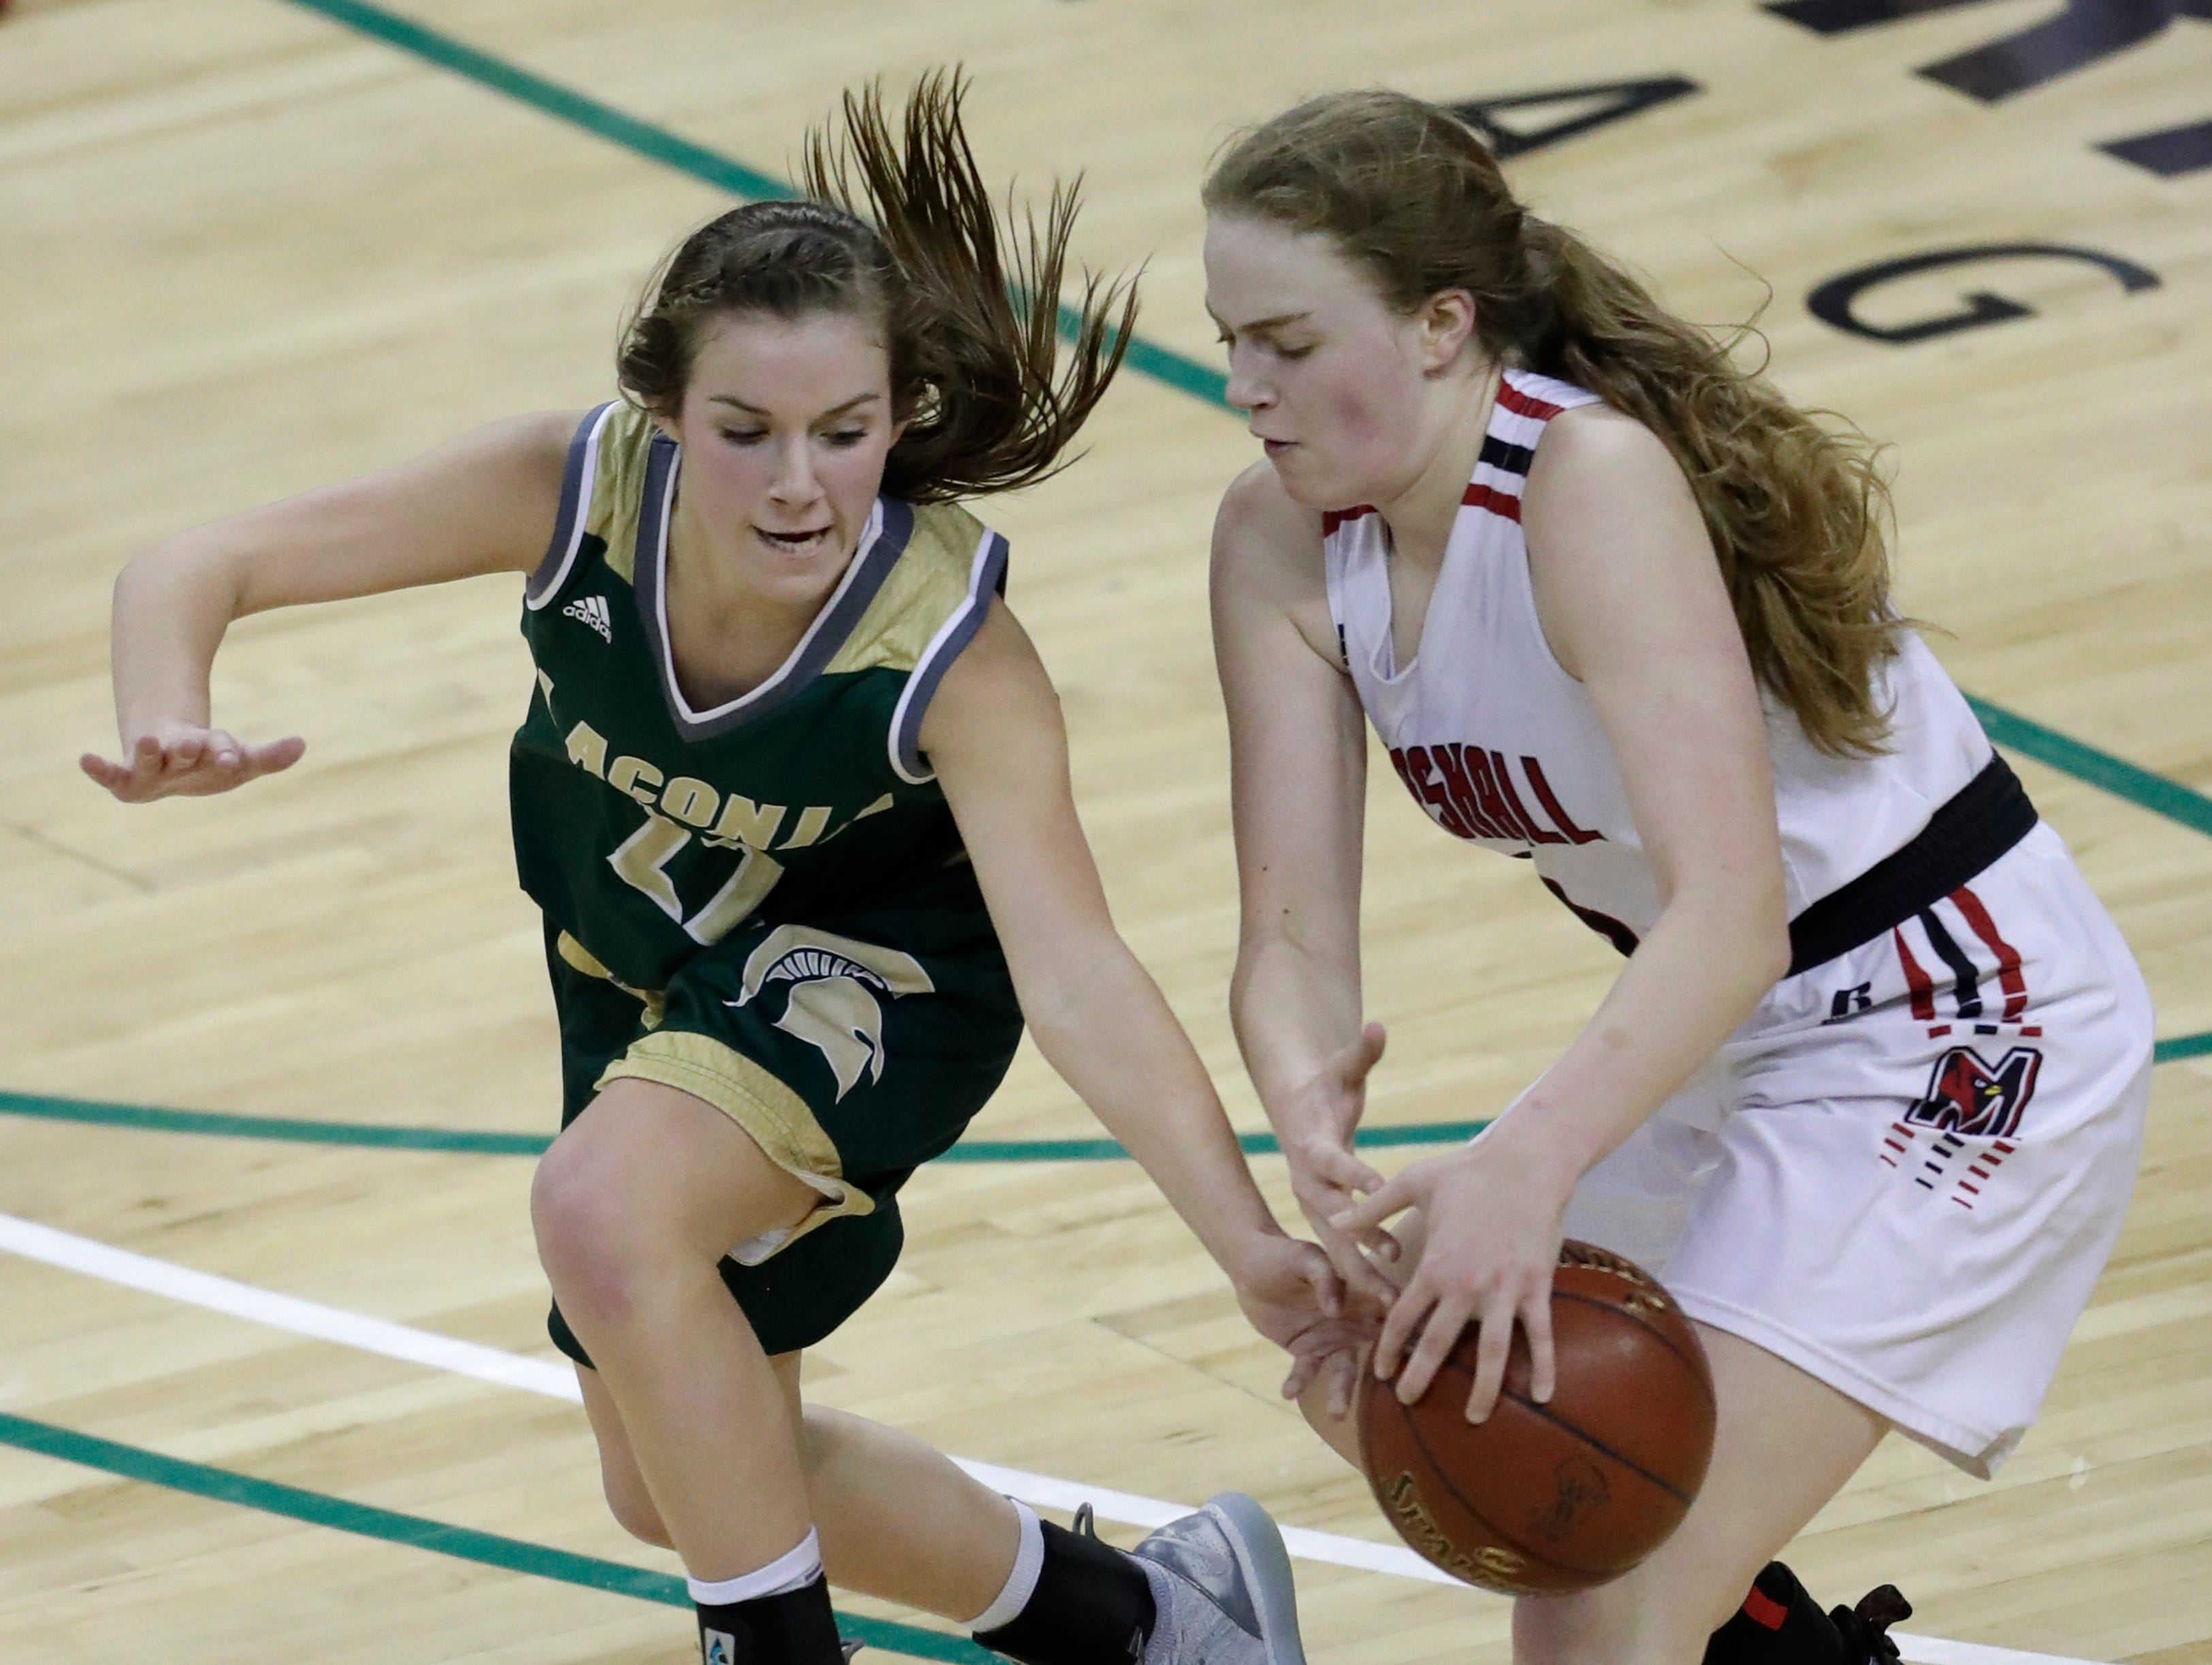 Laconia's Haley Rens (22) tries to steal the ball from Marshall's Anna Lutz (3) during their Division 3 championship game at the WIAA girls state basketball tournament Saturday, March 9, 2019, at the Resch Center in Ashwaubenon, Wis. Dan Powers/USA TODAY NETWORK-Wisconsin